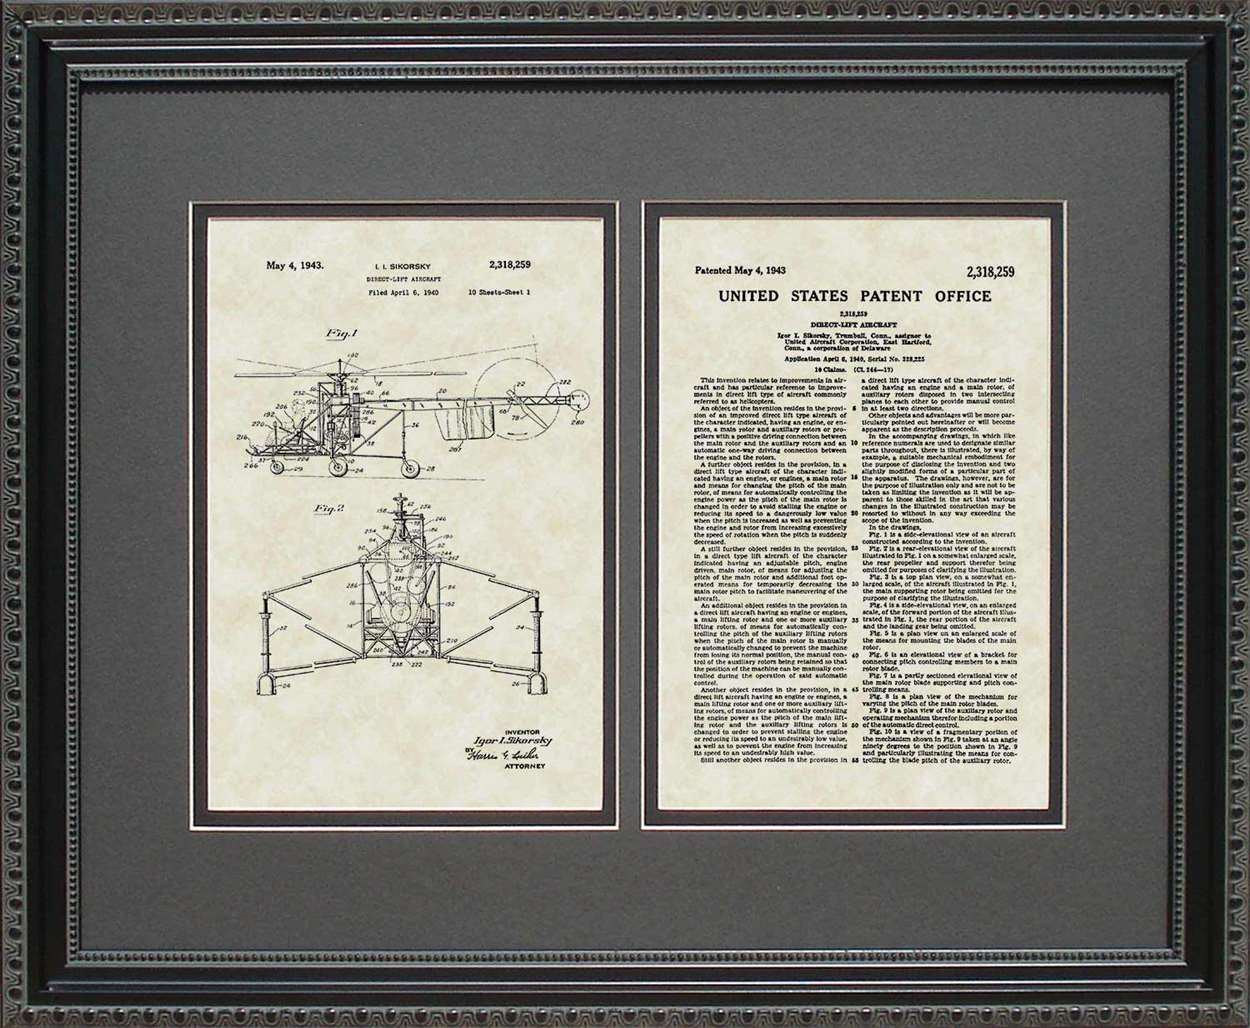 Helicopter Patent, Art & Copy, Sikorsky, 1943, 16x20